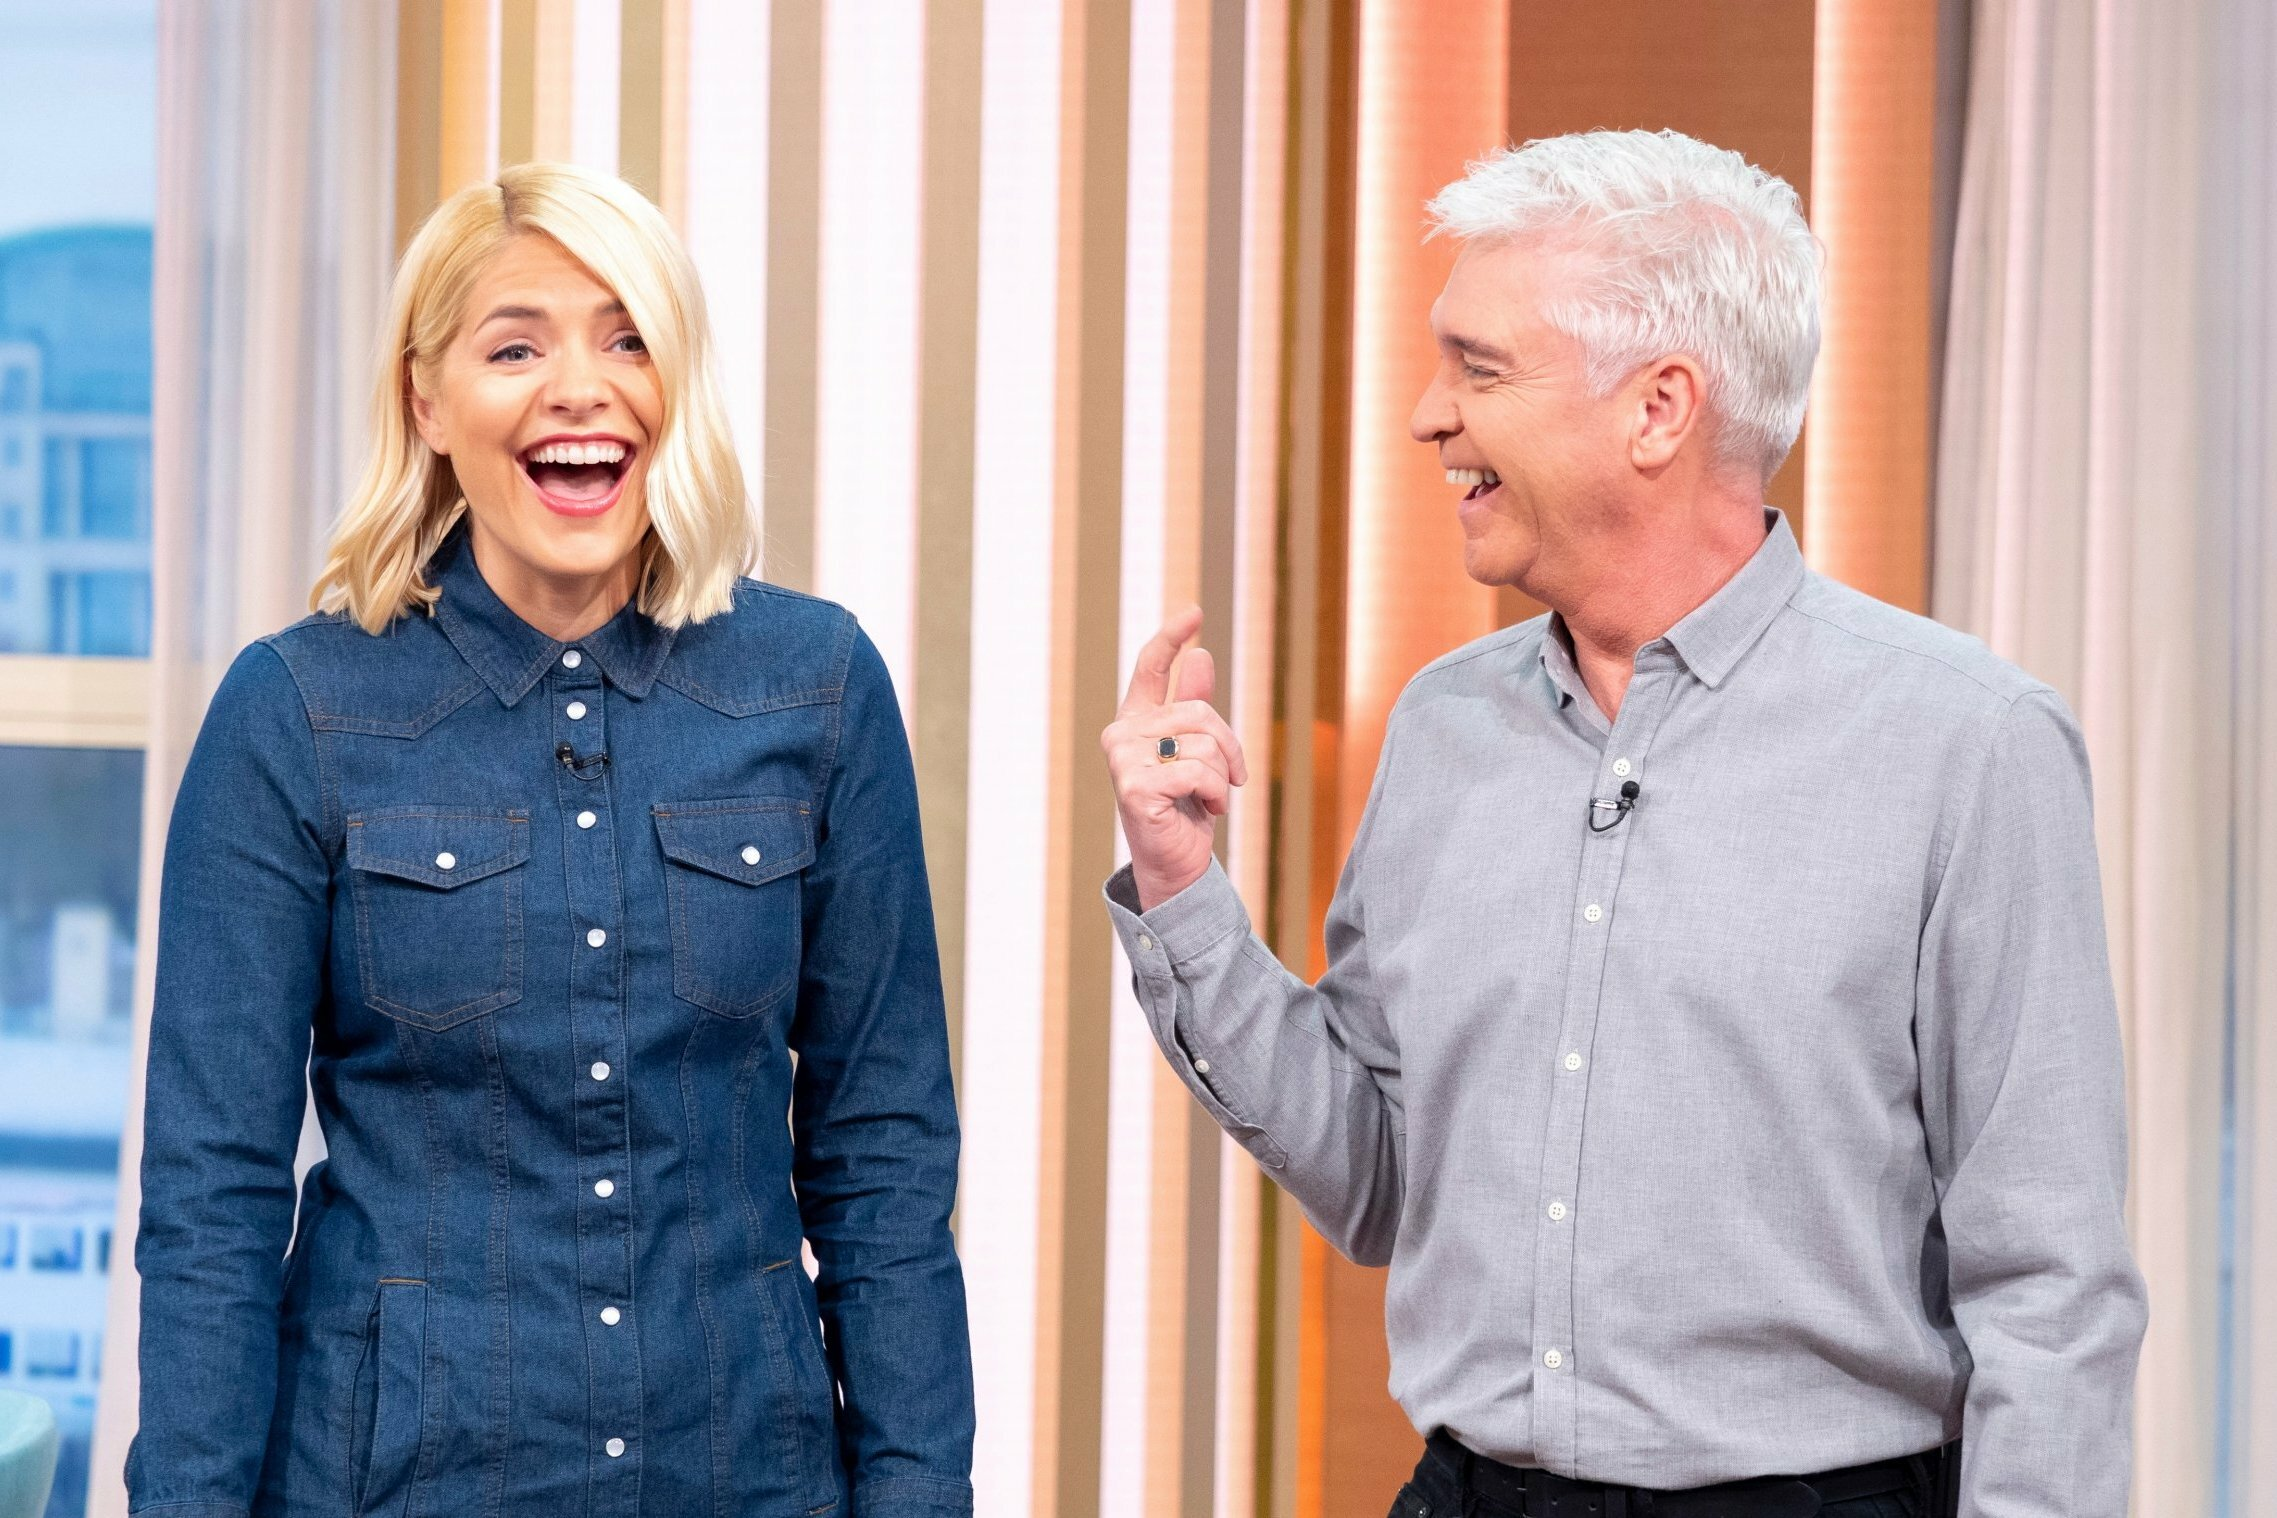 b4ff53ca070e Holly Willoughby drops out of This Morning after sharing heartbreaking  family news